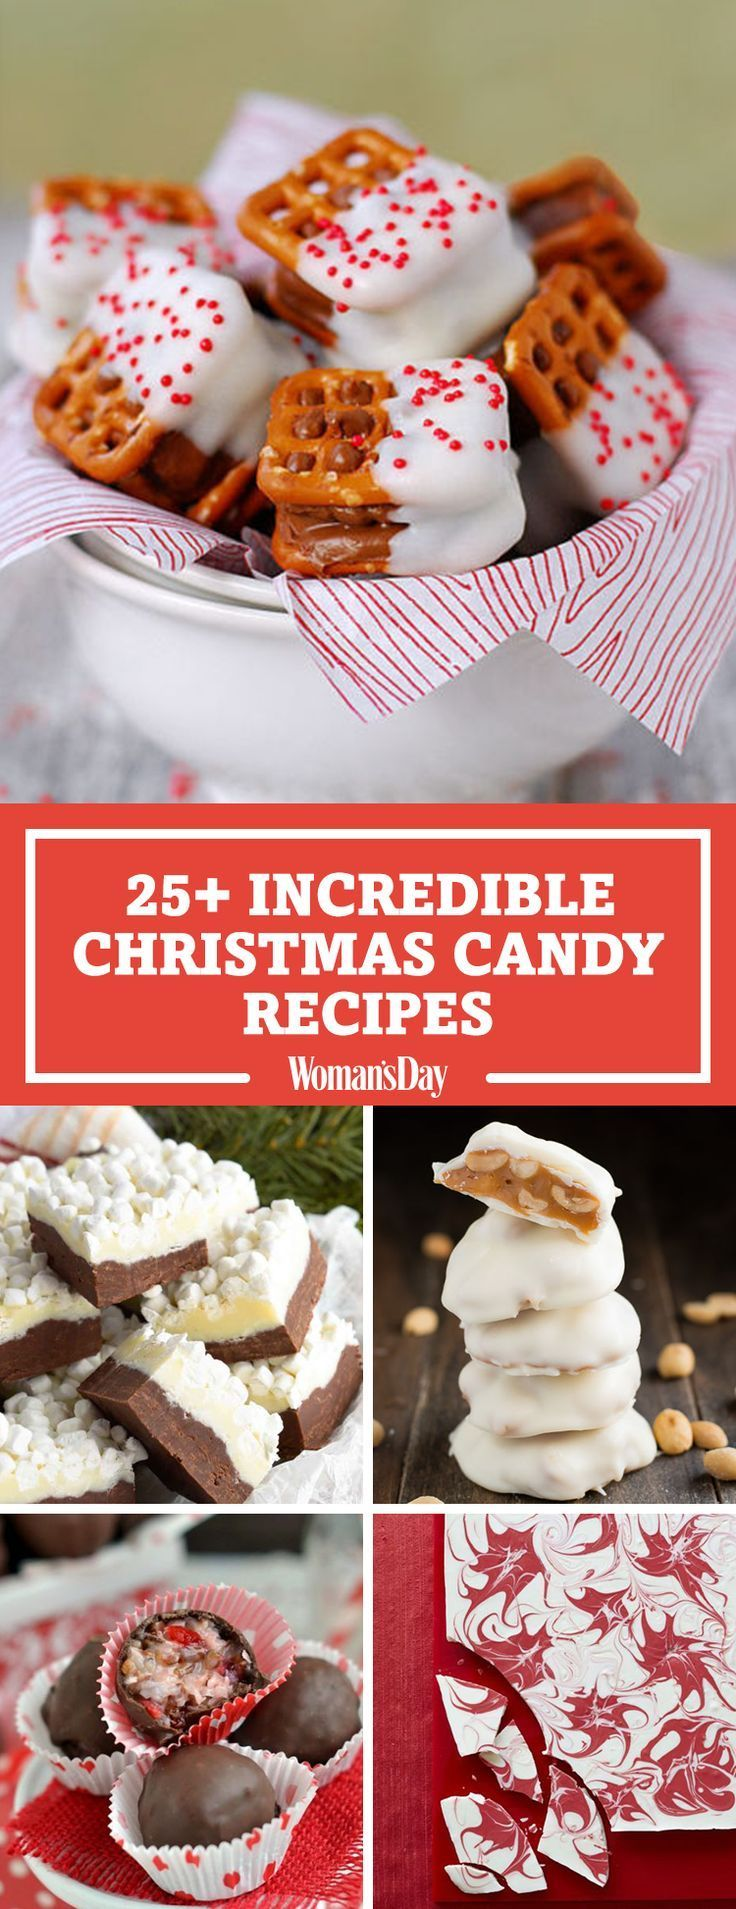 Incredible Christmas Candy Recipes You Can Make At Home These festive Christmas candy sweets will get everyone in the holiday spirit. Make these incredible Christmas candies for holiday party favors. Your guests will love munching on Candy Bar Pretzel Bites after they eat a delicious Christmas dinner!These festive Christmas candy sweets will get ever...